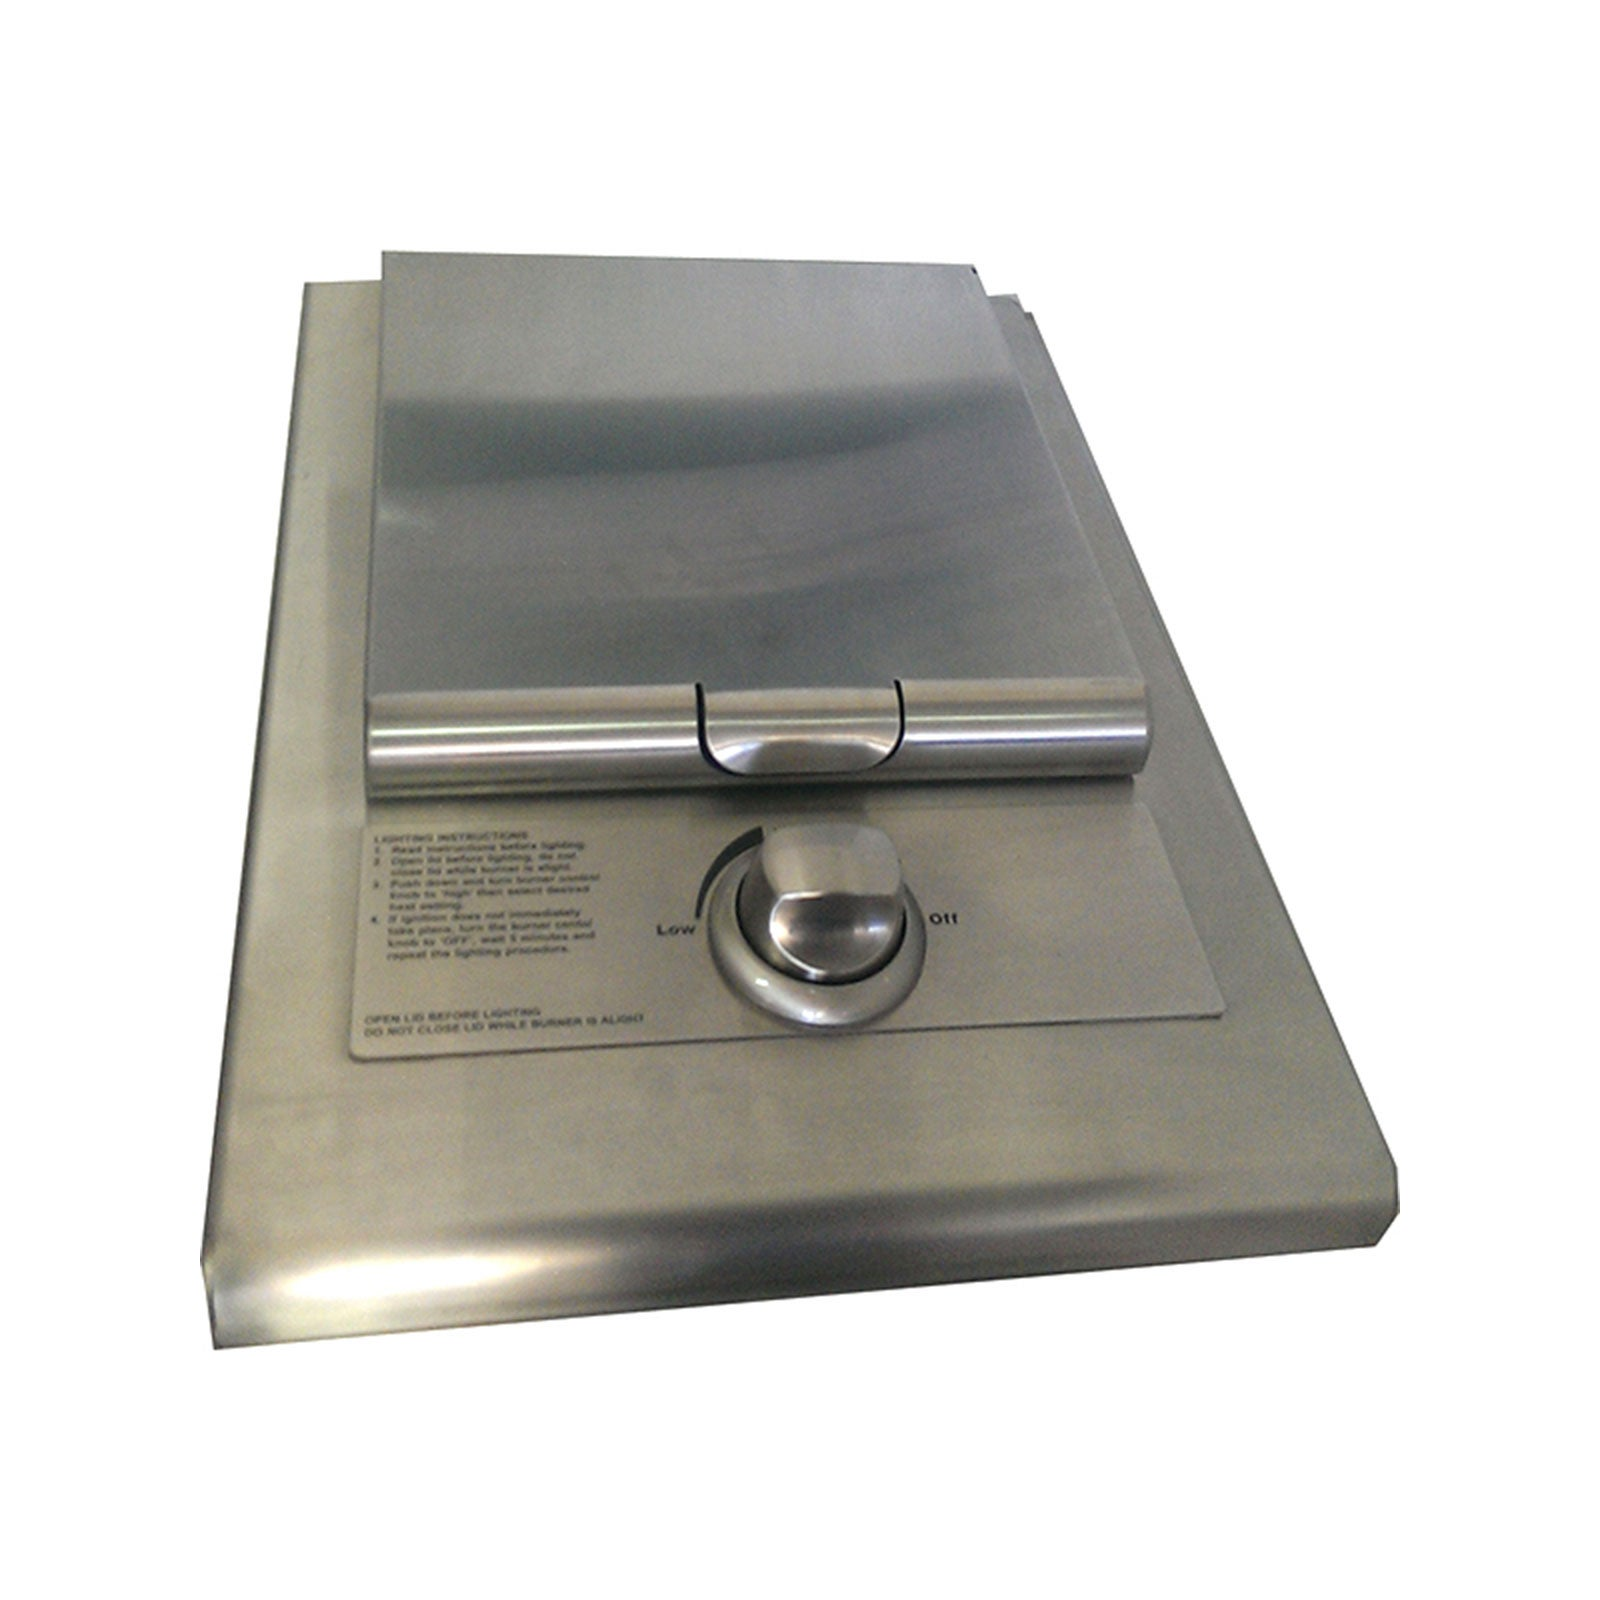 BeefEater Signature Built In - 21MJ Side Burner